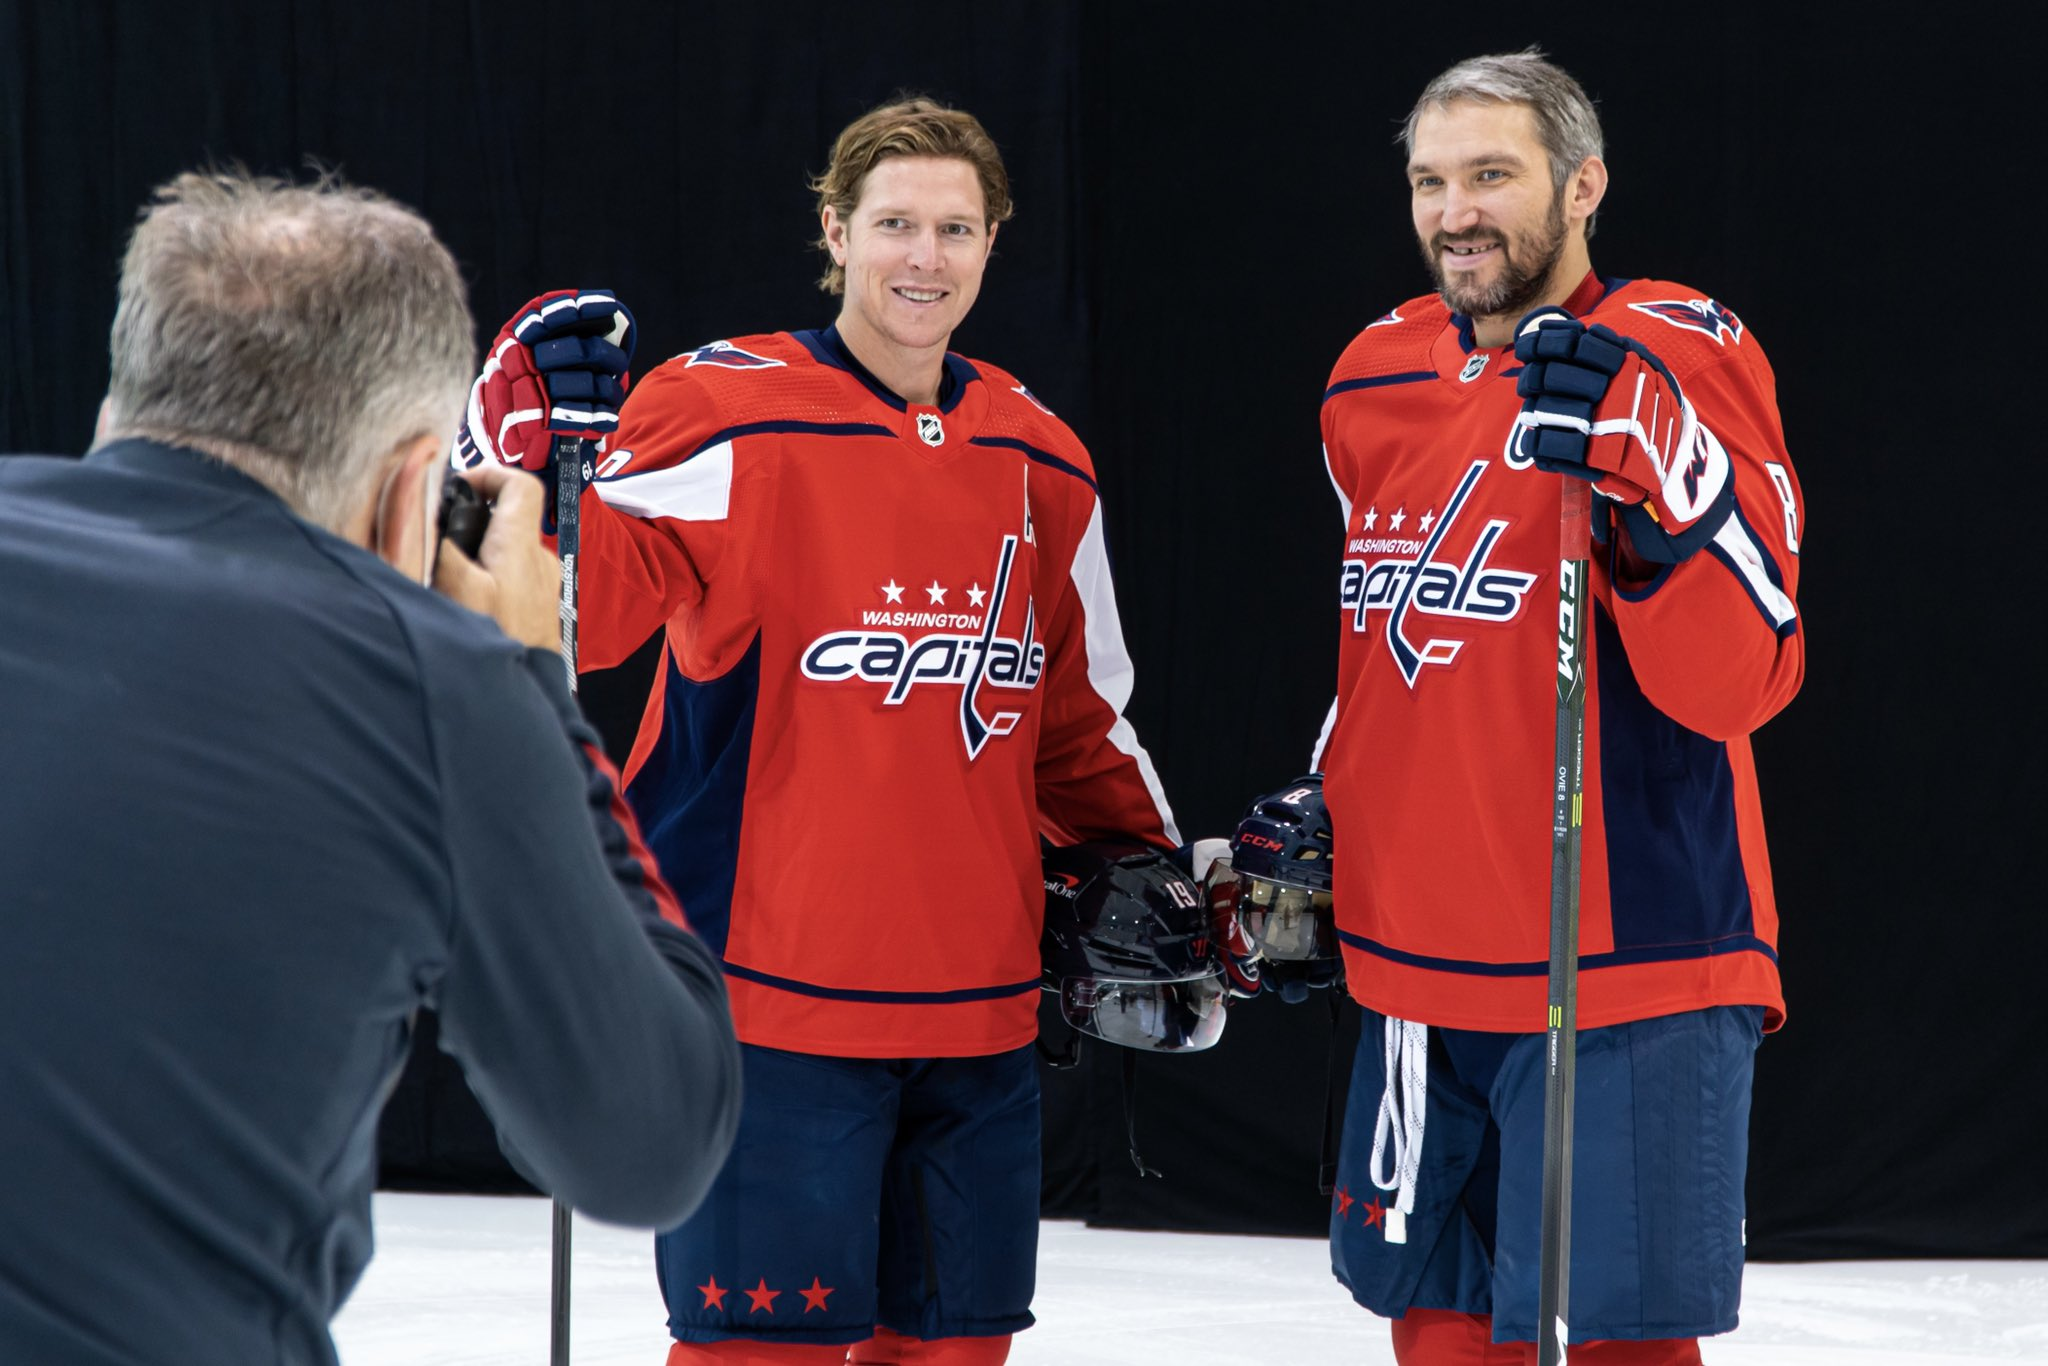 Washington Capitals teammates Alex Ovechkin and Nicklas Backstrom posing for a photo together at the team's 2021 Media Day.